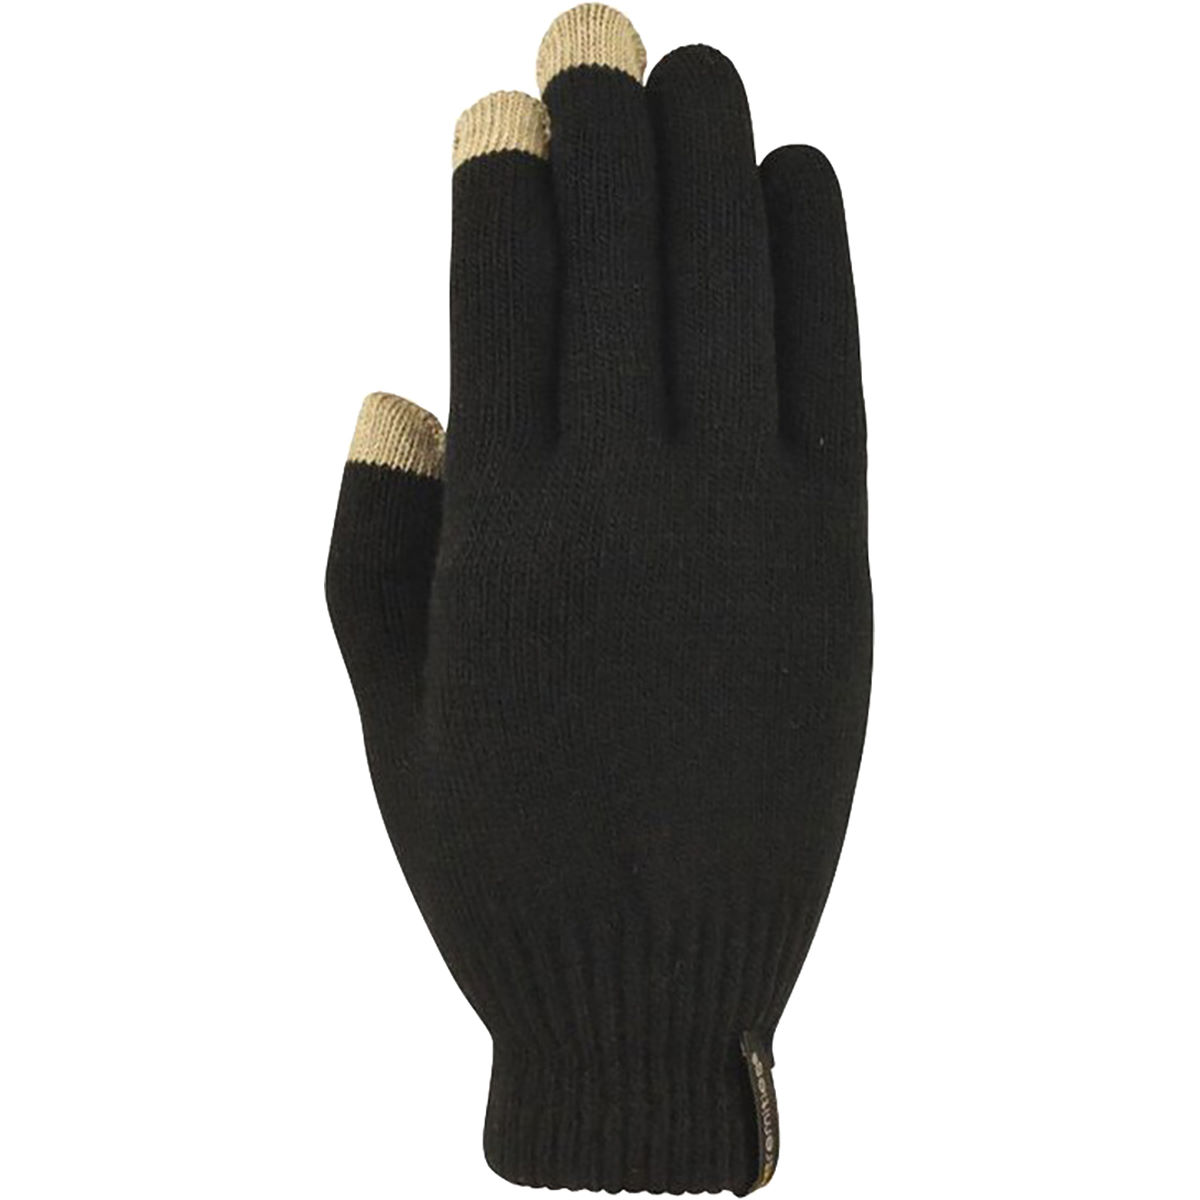 Extremities Extremities Thinny Touch Glove   Gloves